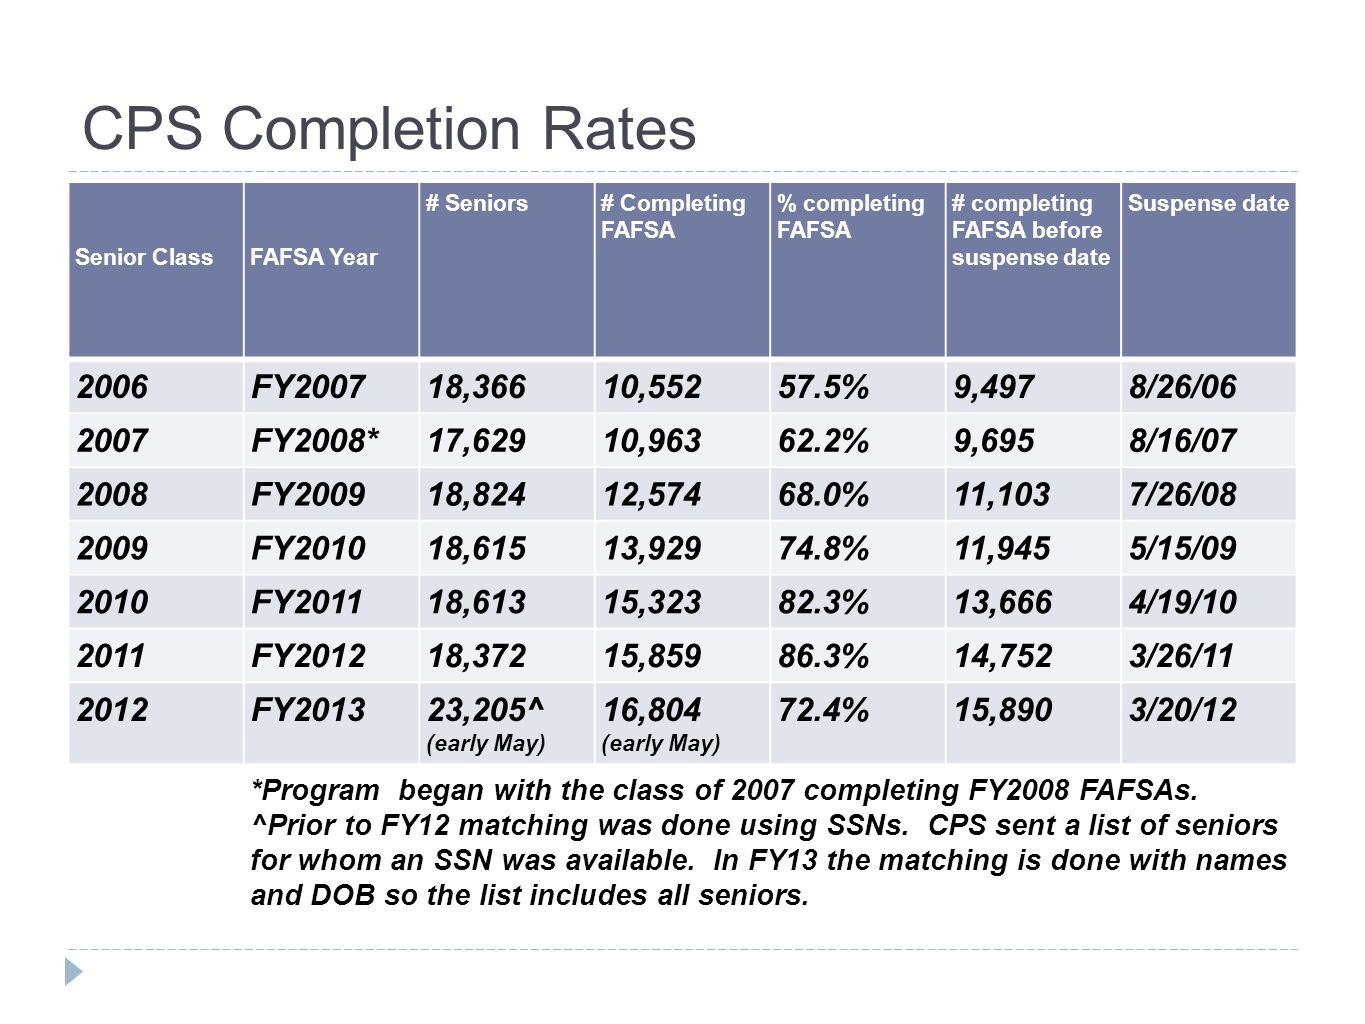 CPS Completion Rates Senior ClassFAFSA Year # Seniors# Completing FAFSA % completing FAFSA # completing FAFSA before suspense date Suspense date 2006FY200718,36610,55257.5%9,4978/26/06 2007FY2008*17,62910,96362.2%9,6958/16/07 2008FY200918,82412,57468.0%11,1037/26/08 2009FY201018,61513,92974.8%11,9455/15/09 2010FY201118,61315,32382.3%13,6664/19/10 2011FY201218,37215,85986.3%14,7523/26/11 2012FY201323,205^ (early May) 16,804 (early May) 72.4%15,8903/20/12 *Program began with the class of 2007 completing FY2008 FAFSAs.